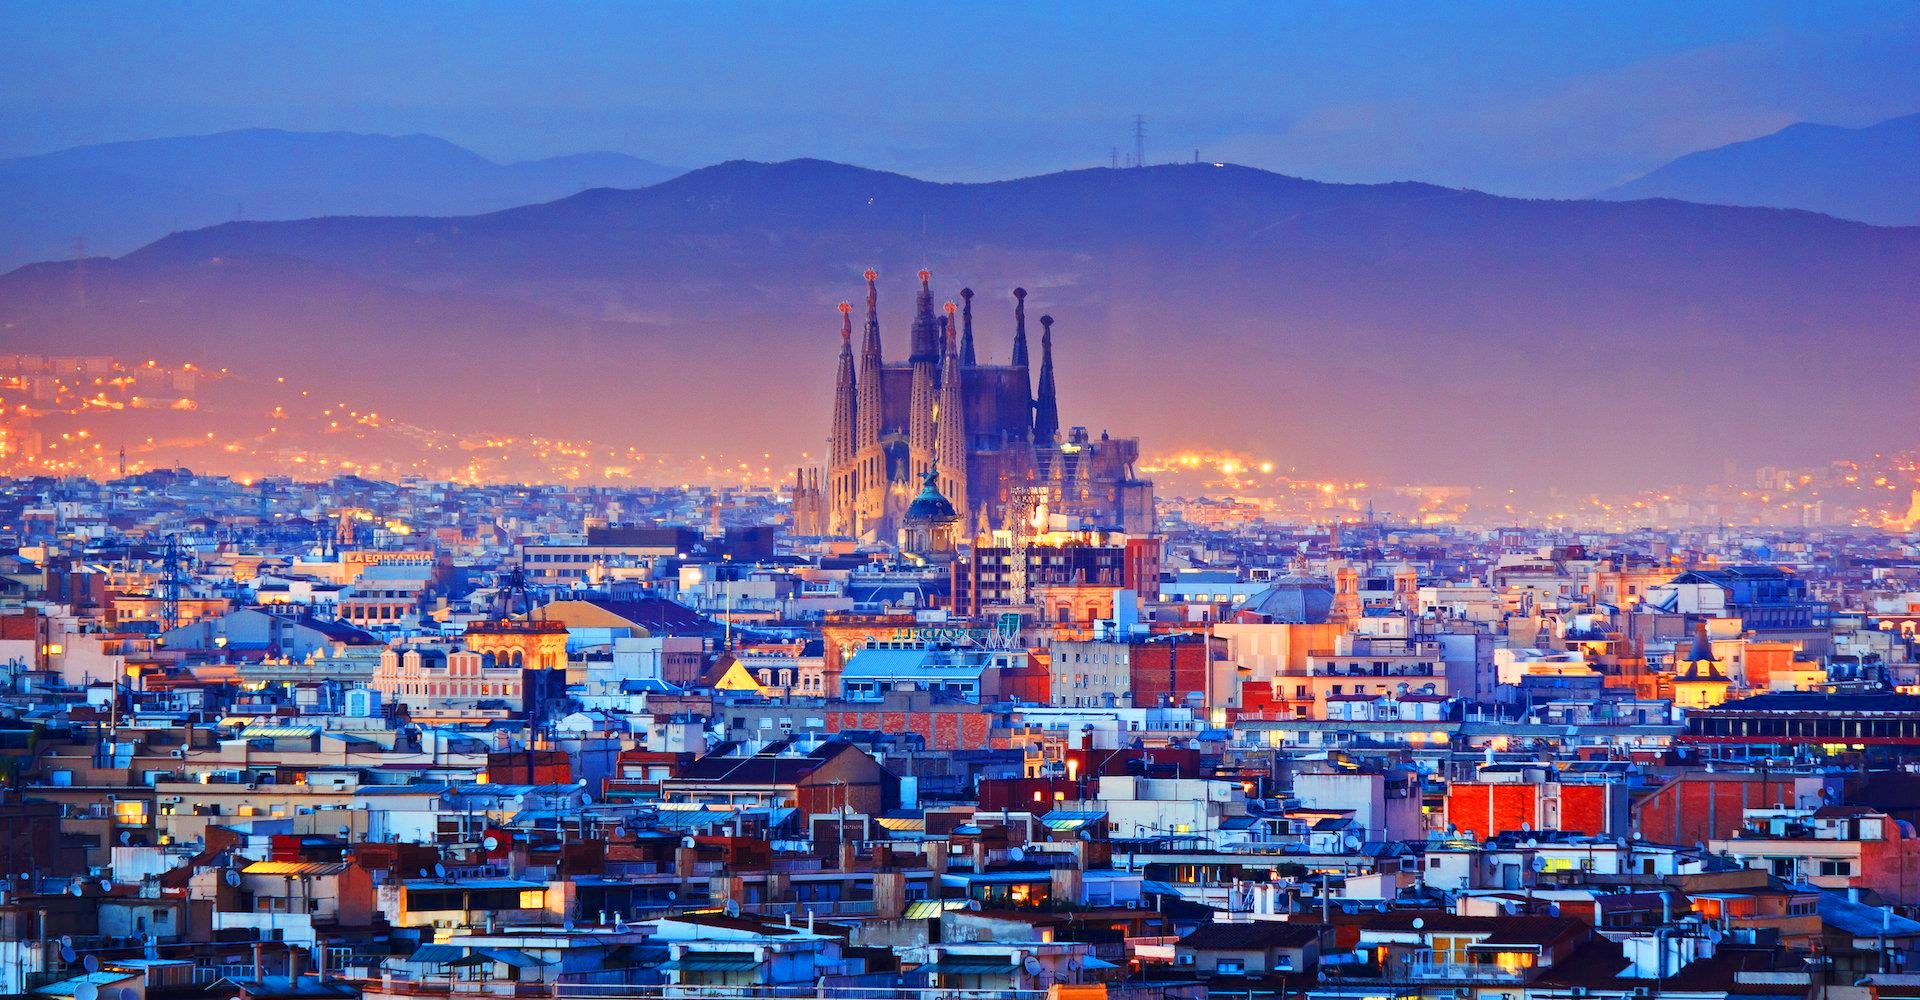 10-Best-Cities-To-Study-Abroad-Barcelona